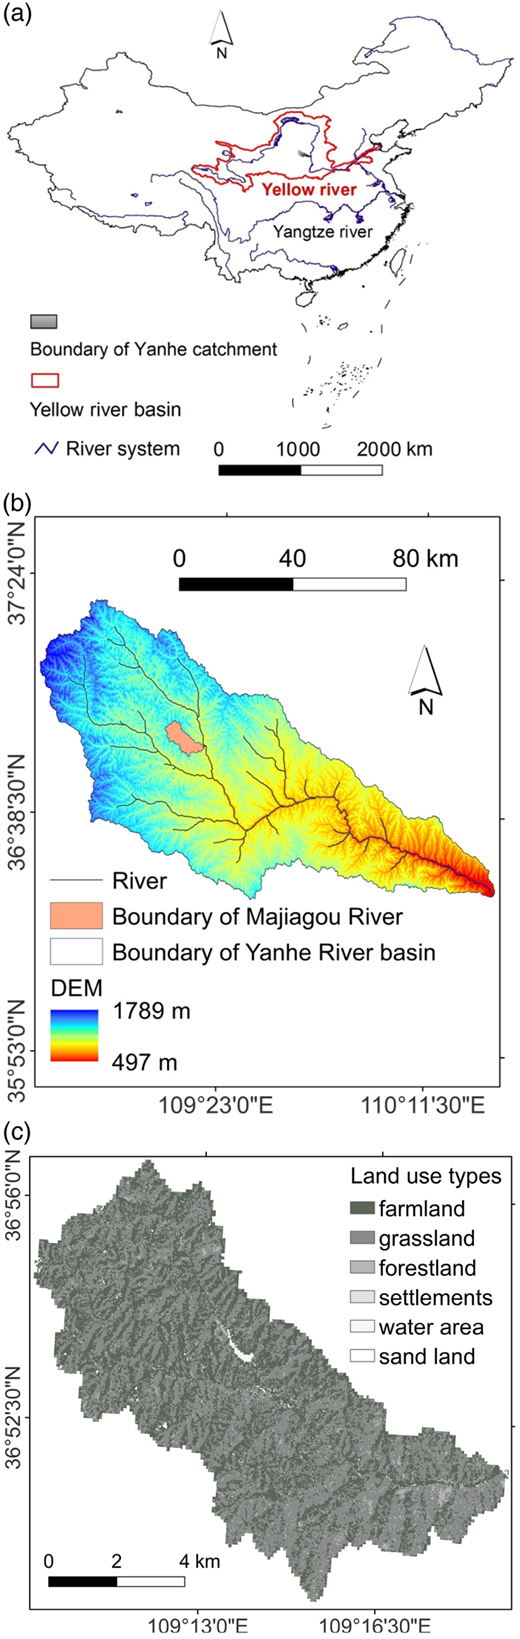 (a) Relative location of China's river system, Yellow River basin and Yanhe River basin; (b) relative location of rivers, Yanhe River basin and Majiagou River watershed, DEM of Yanhe River basin; and (c) reclassified land use types of the Majiagou River watershed.